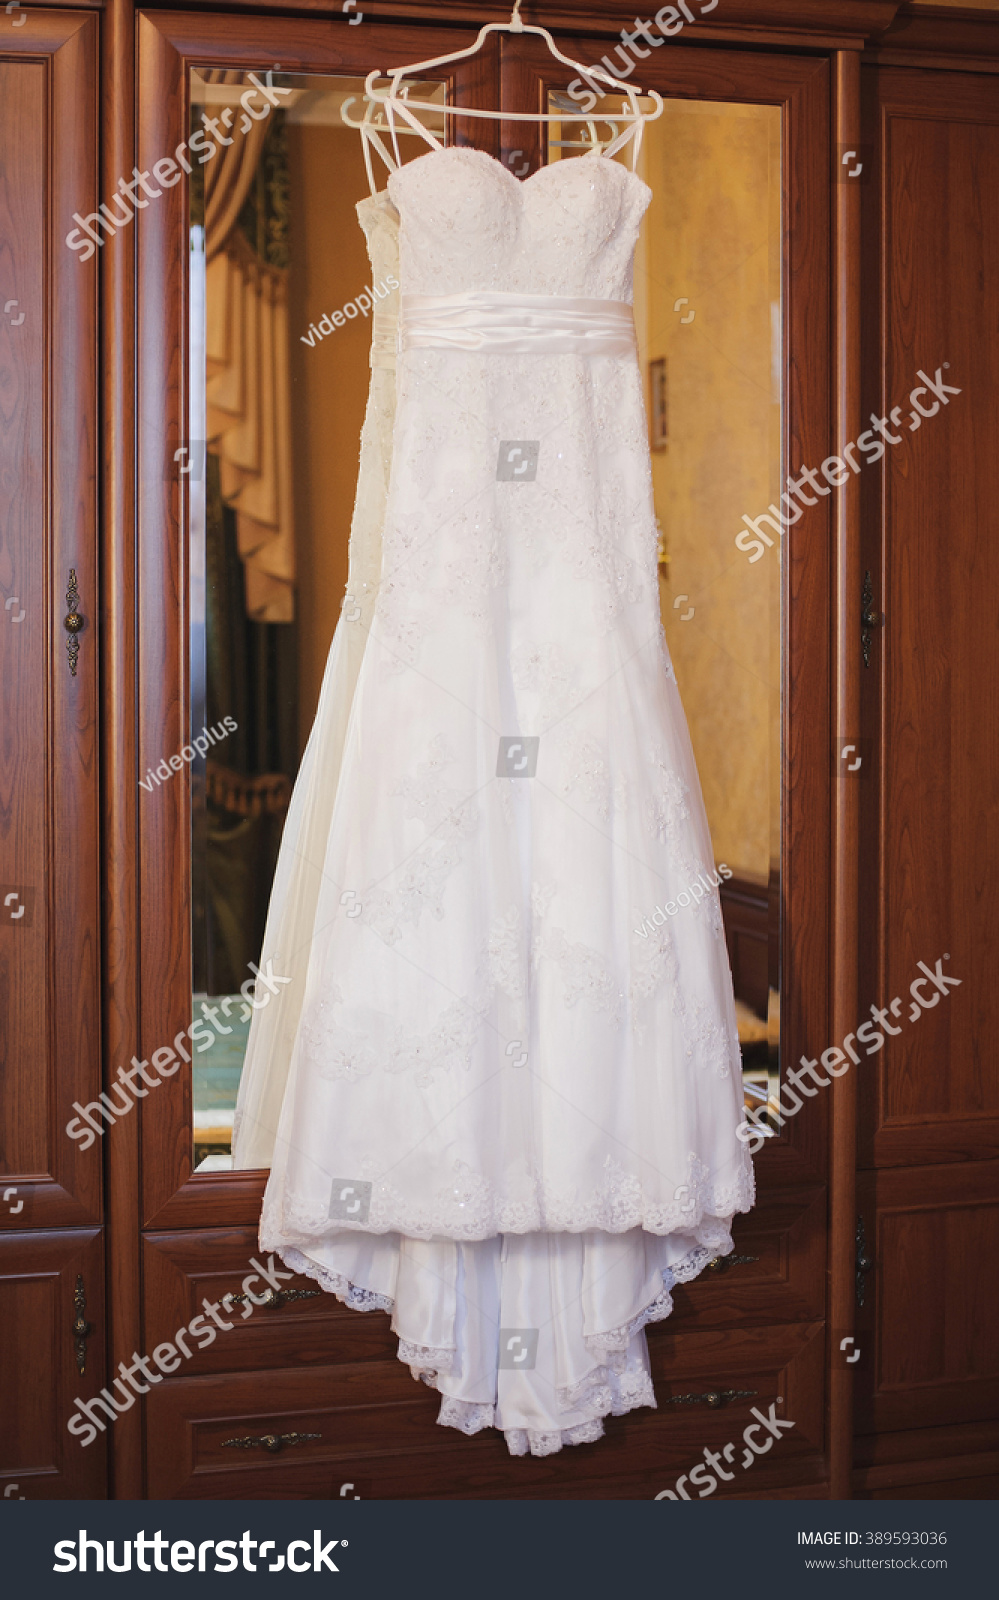 IWhite Wedding Dresses Hanging In The Closet Beautiful Dress With A Train